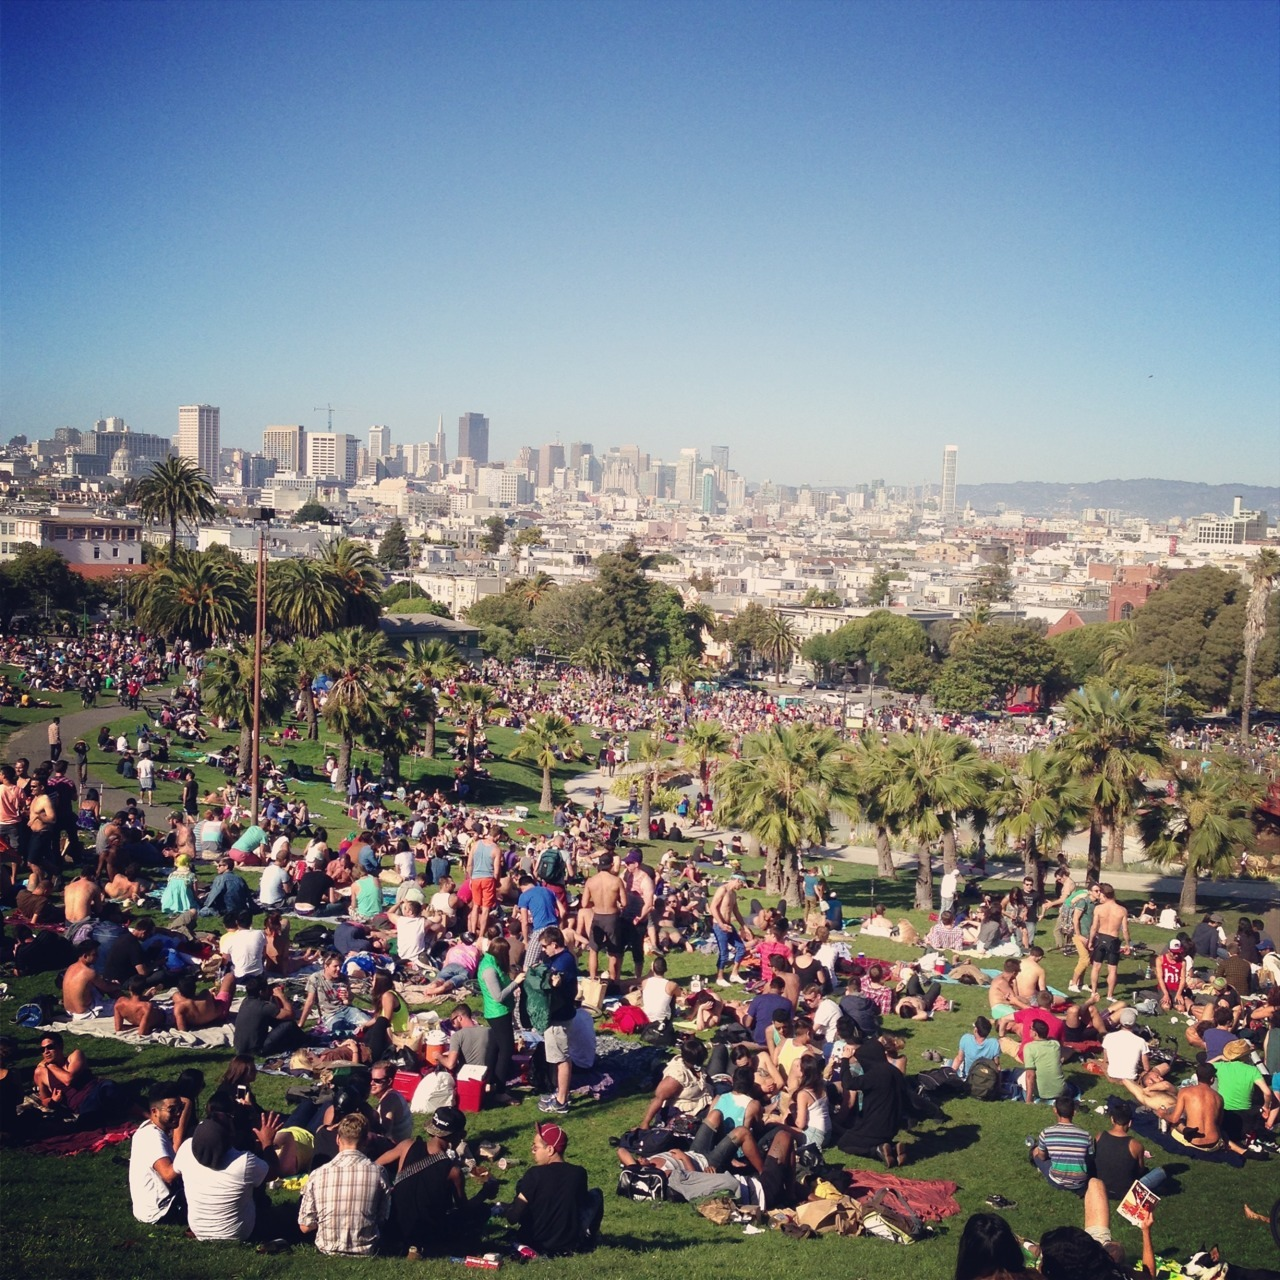 lovelovelove sunny days like these. everyone swarms to dolores park, with beer (and weed) in tow. i'll miss this if i were to move to nyc.